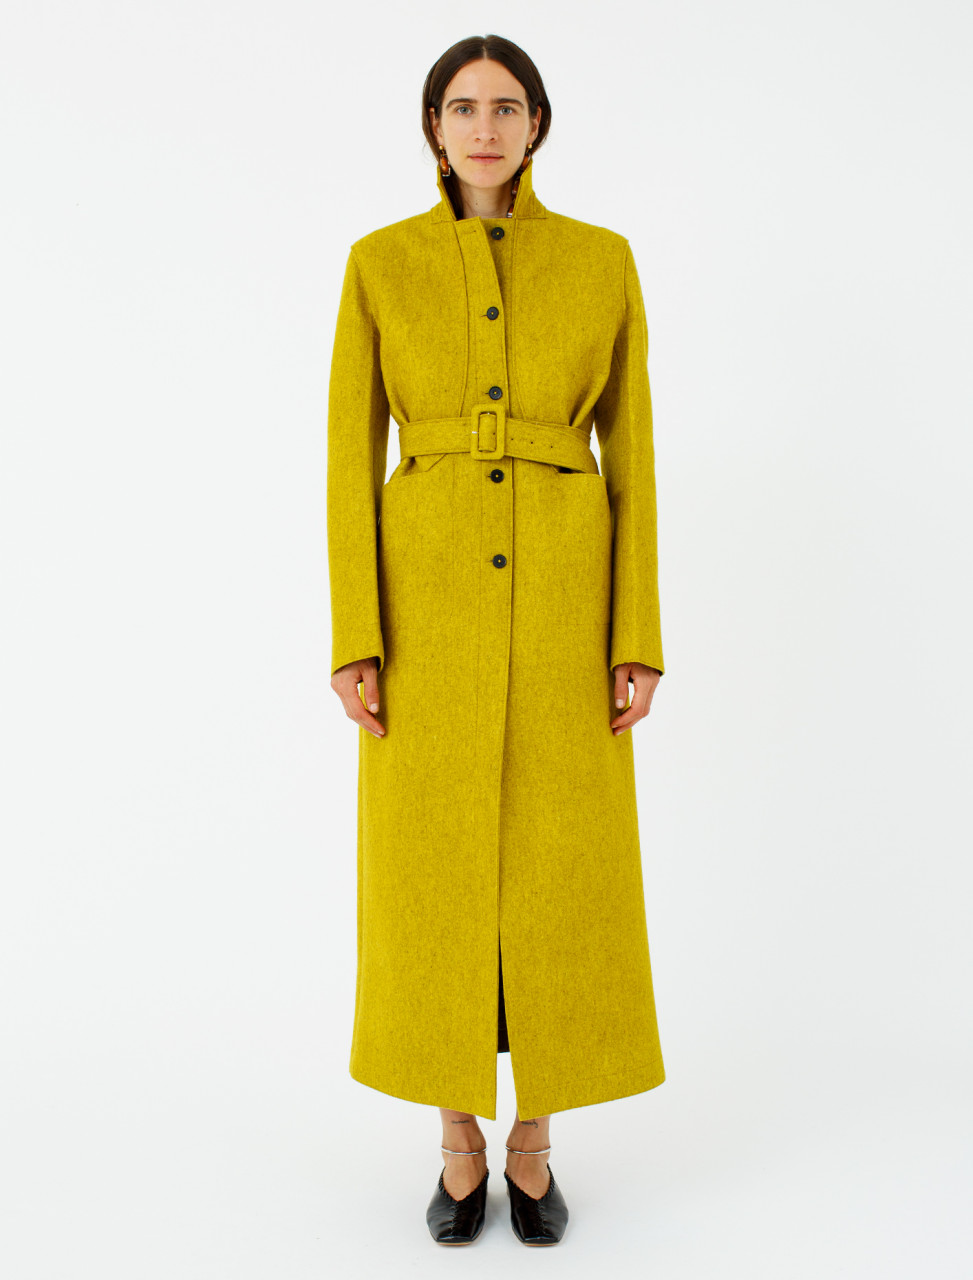 Jil Sander Deconstructed Coat